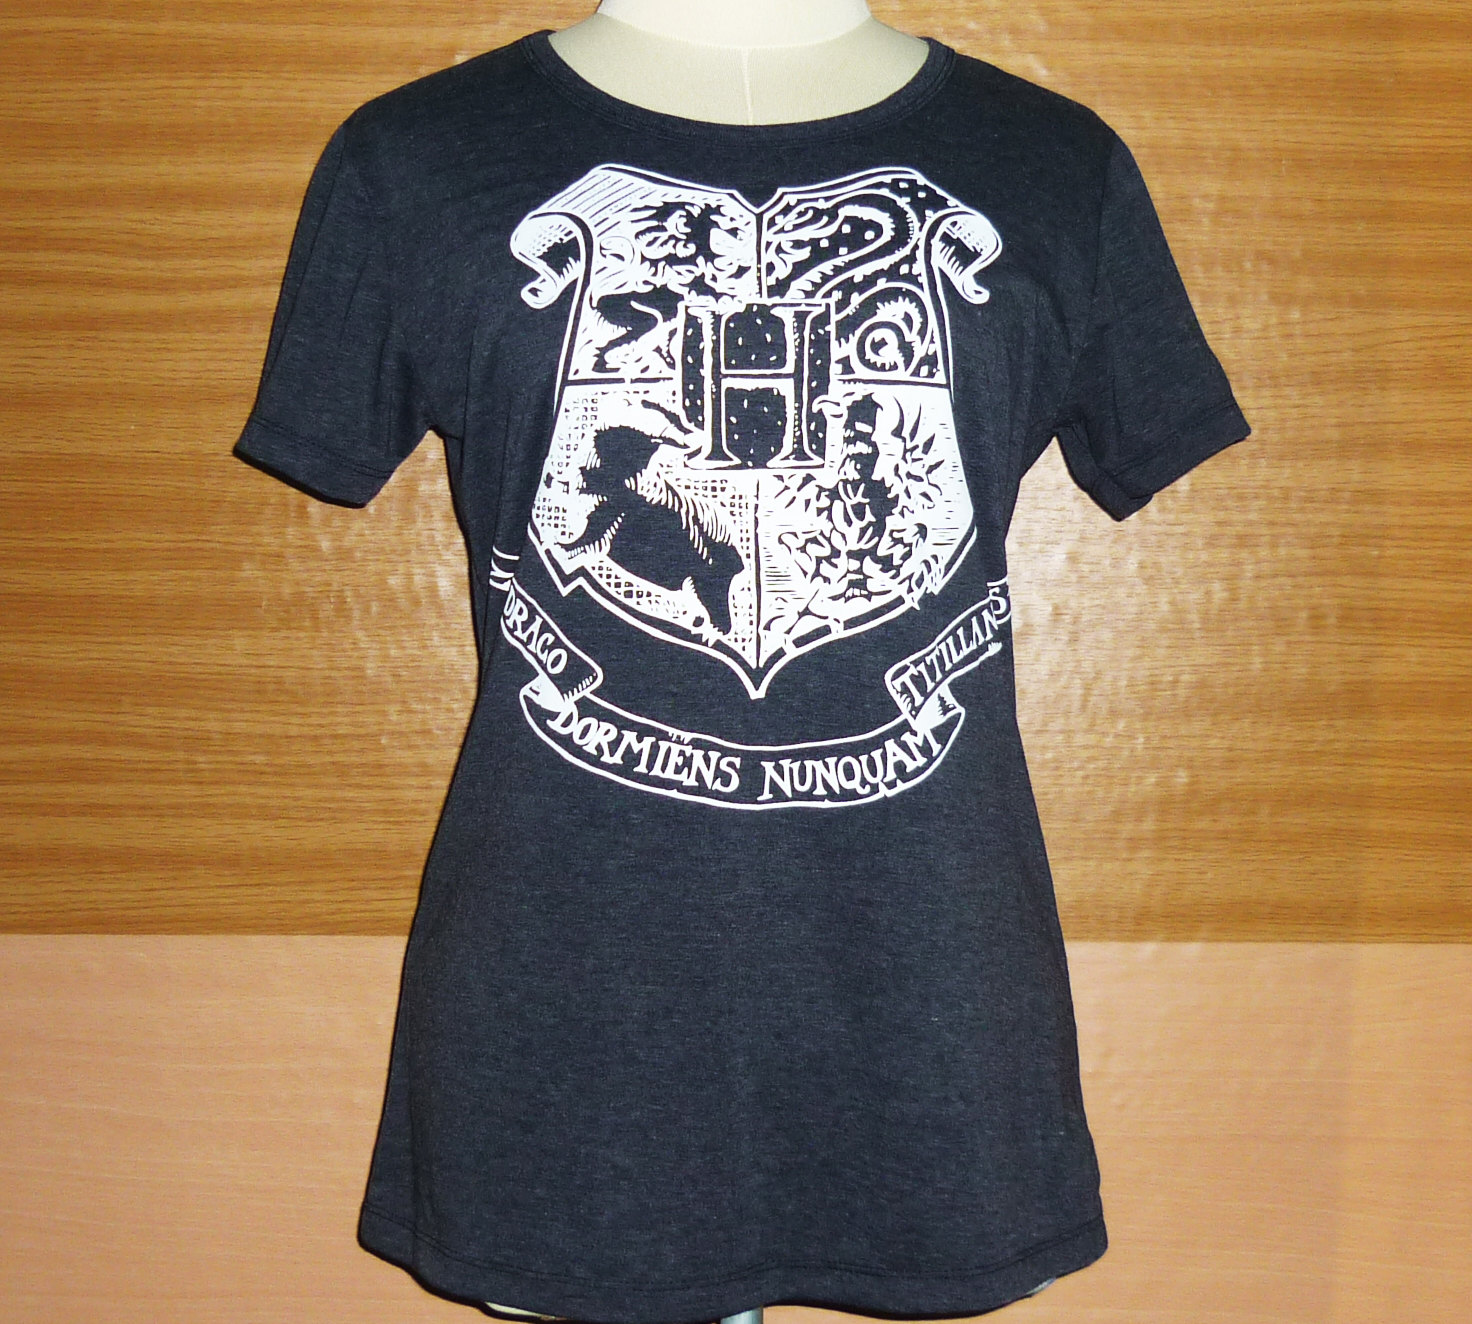 Lady shirt hogwarts alumni school wizard harry potter tshirt screen print dark gray fancy hogwarts clothing tee teen girl t shirts s m l xl